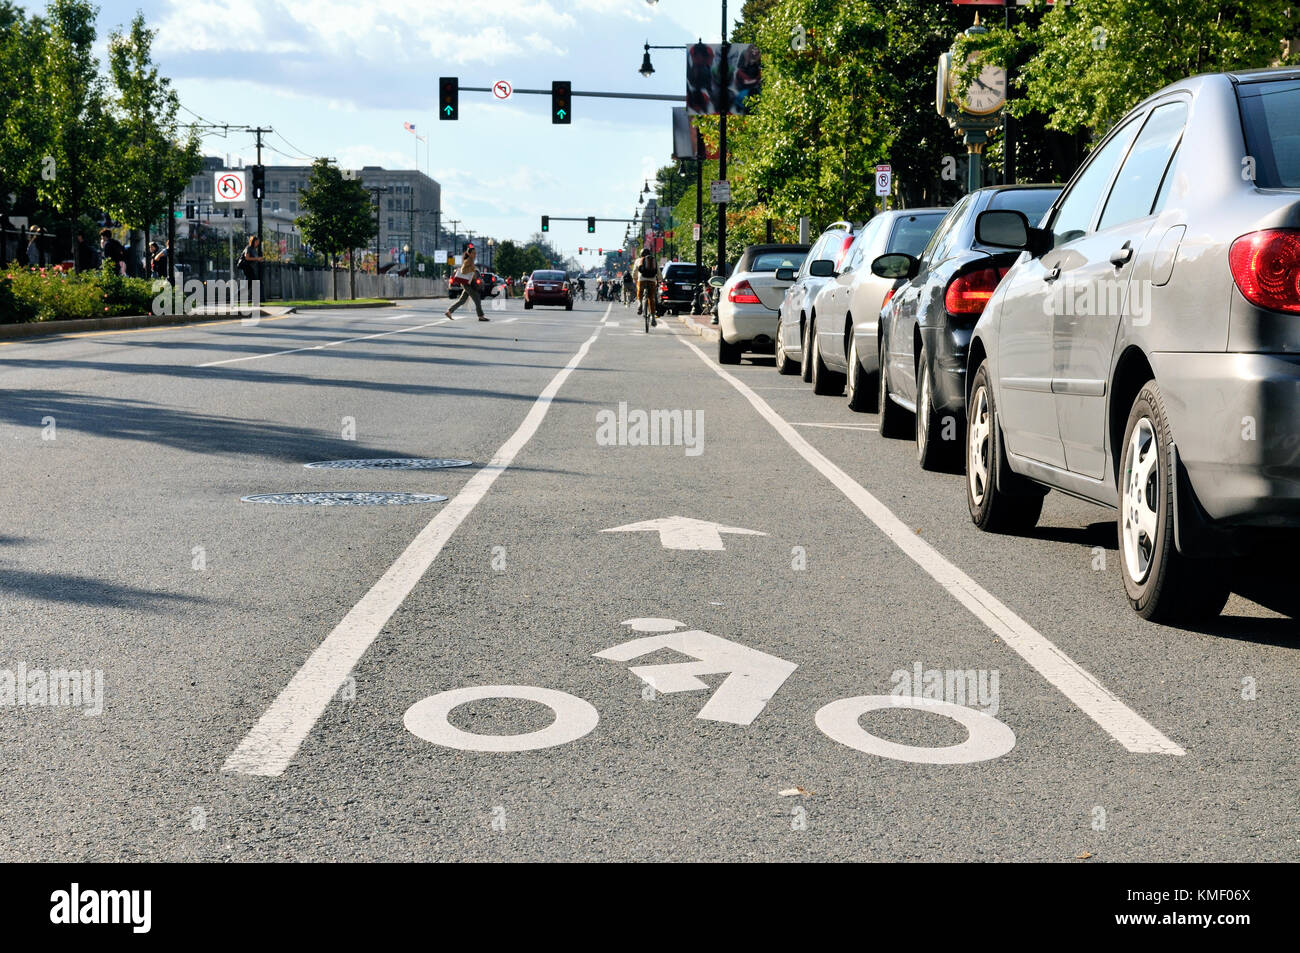 Bike lane in city street. Cyclist symbol painted on pavement, bikers ...